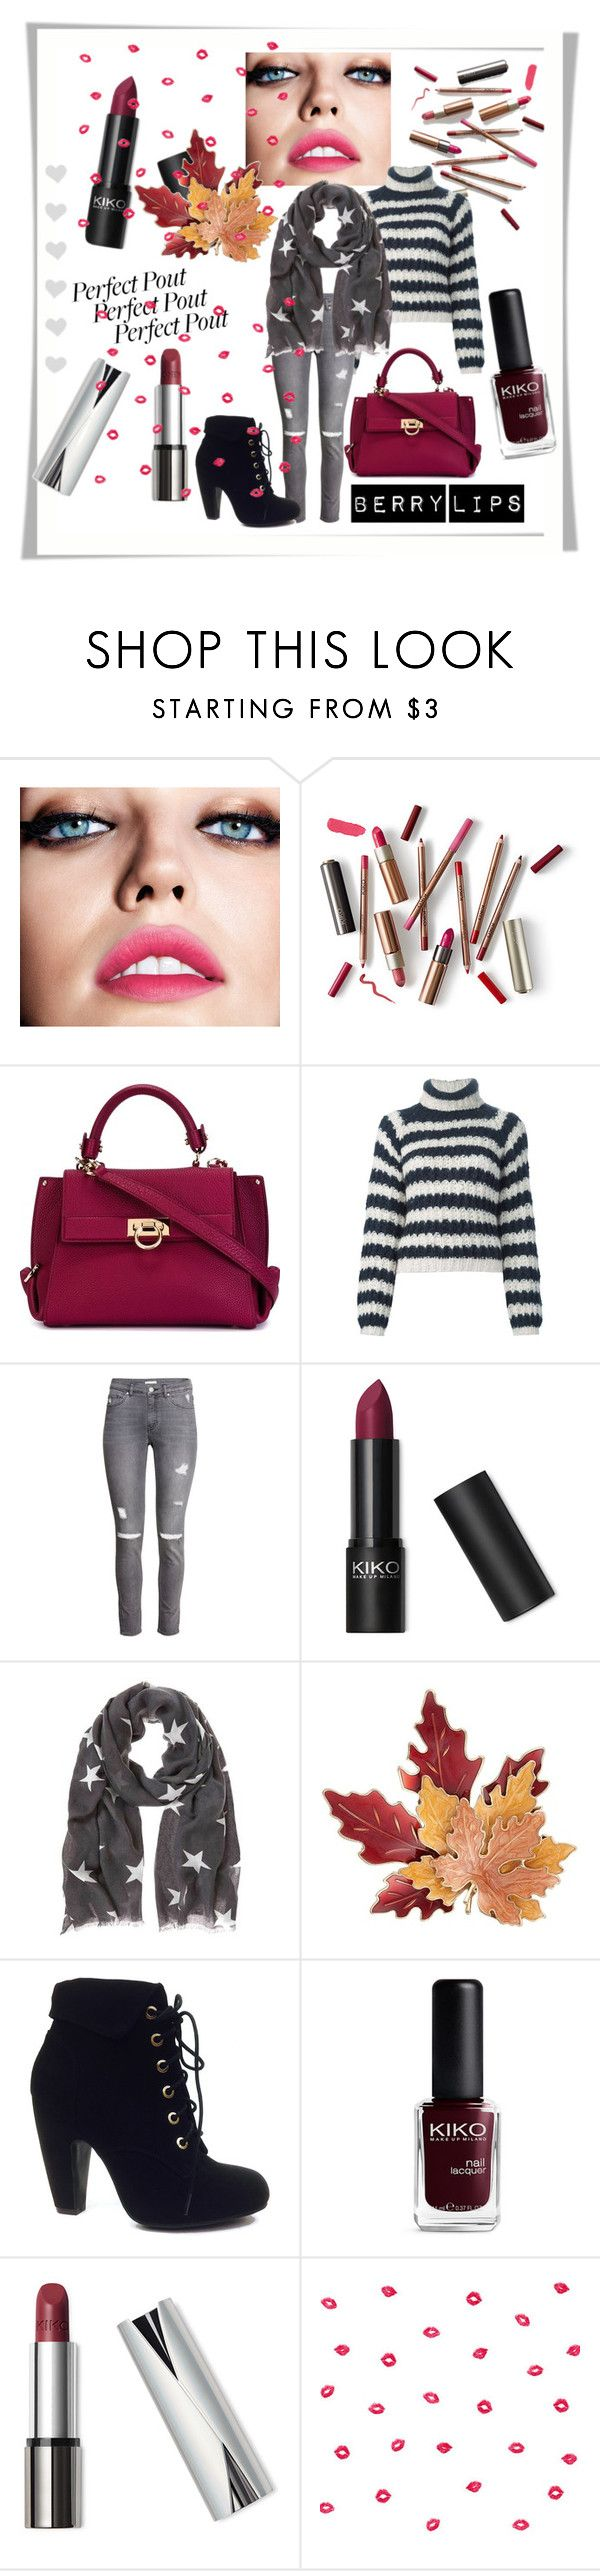 """""""Berry lips"""" by k-ravasio ❤ liked on Polyvore featuring beauty, Maybelline, Salvatore Ferragamo, Chloé, H&M, Rossetto, Croft & Barrow, Bamboo and York Wallcoverings"""